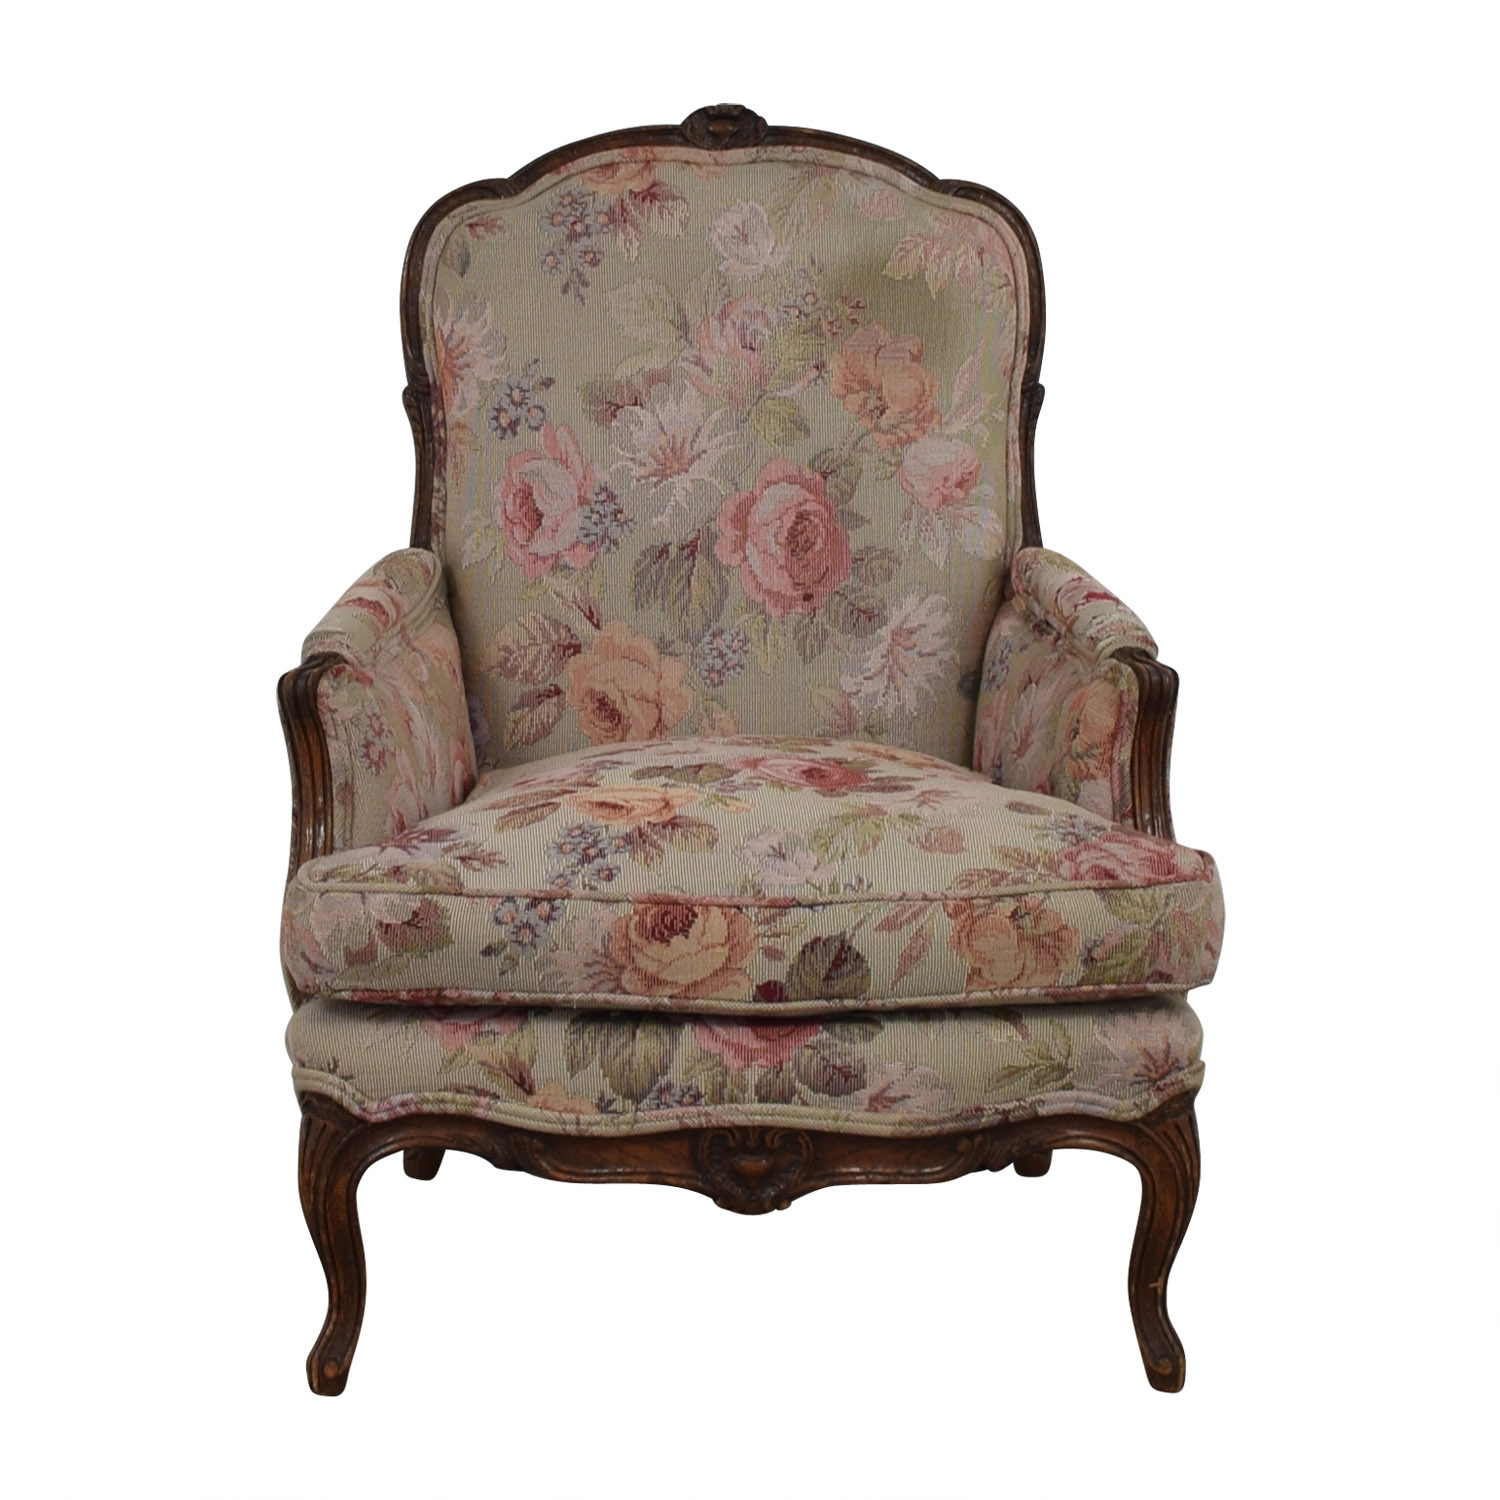 buy Floral Upholstered Arm Chair